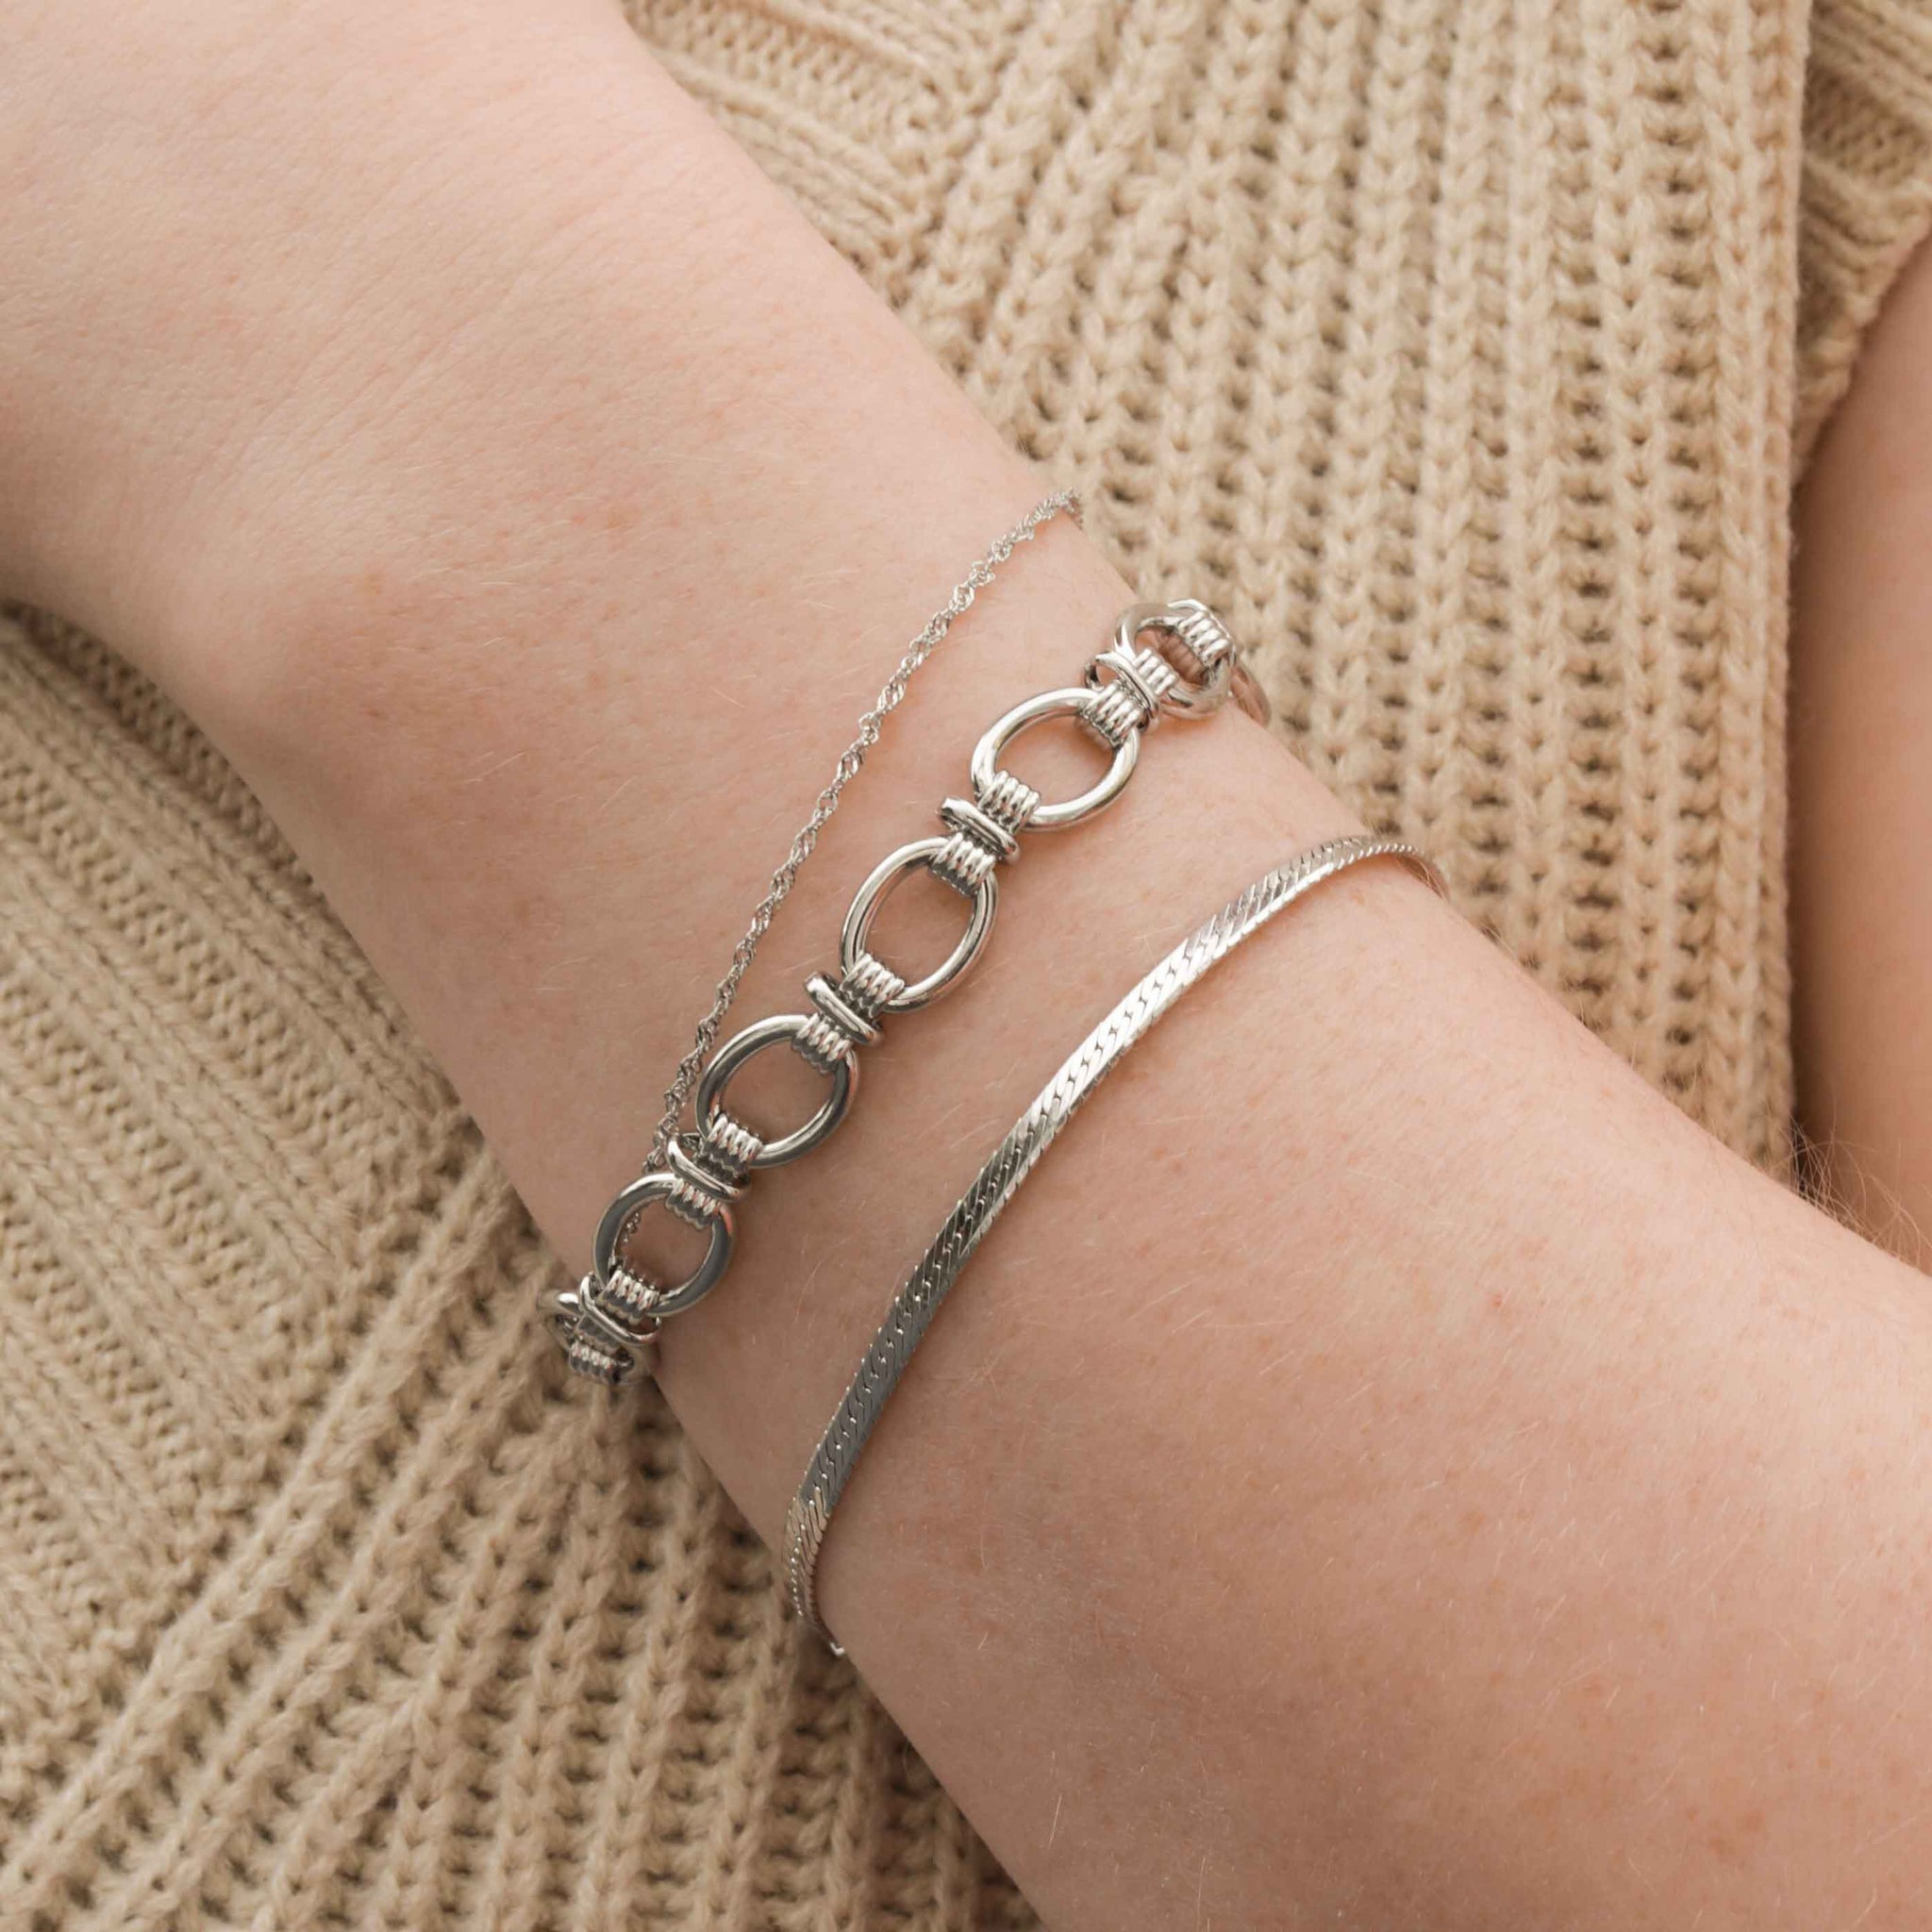 Ribbed Link Chain Bracelet in Silver